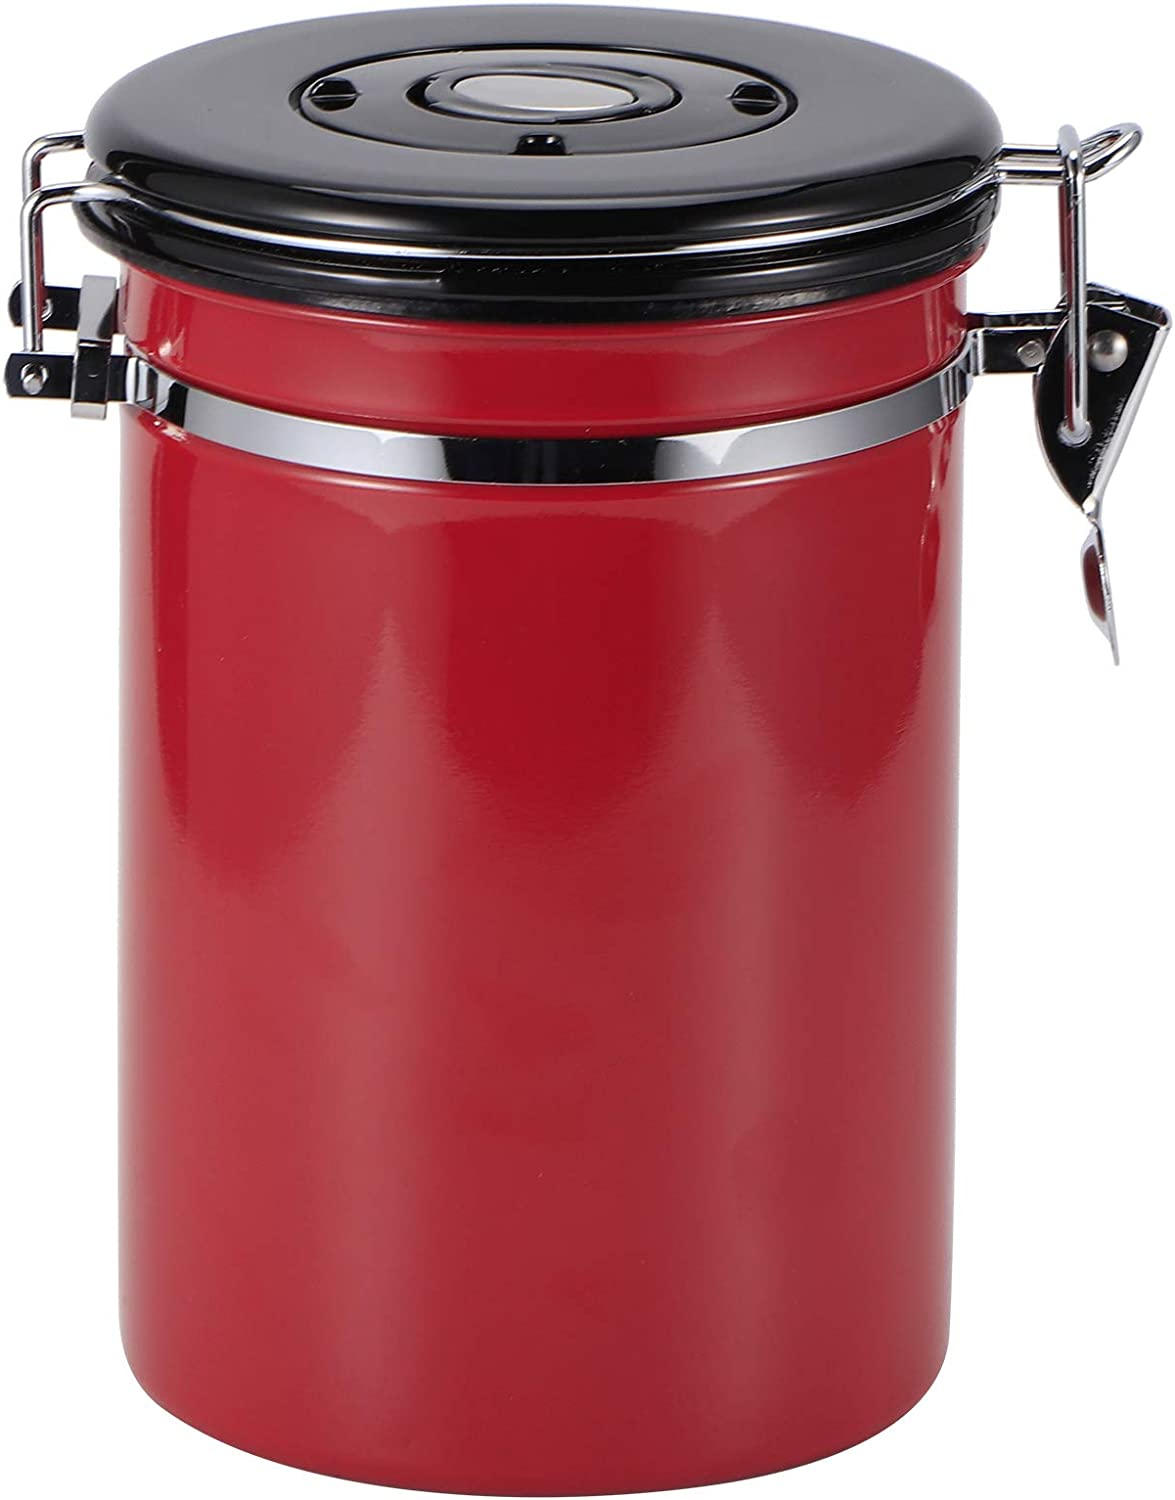 Sealed Food Container Eco‑friendly Albuquerque Mall 1 Kitchen Supplies 4 years warranty red